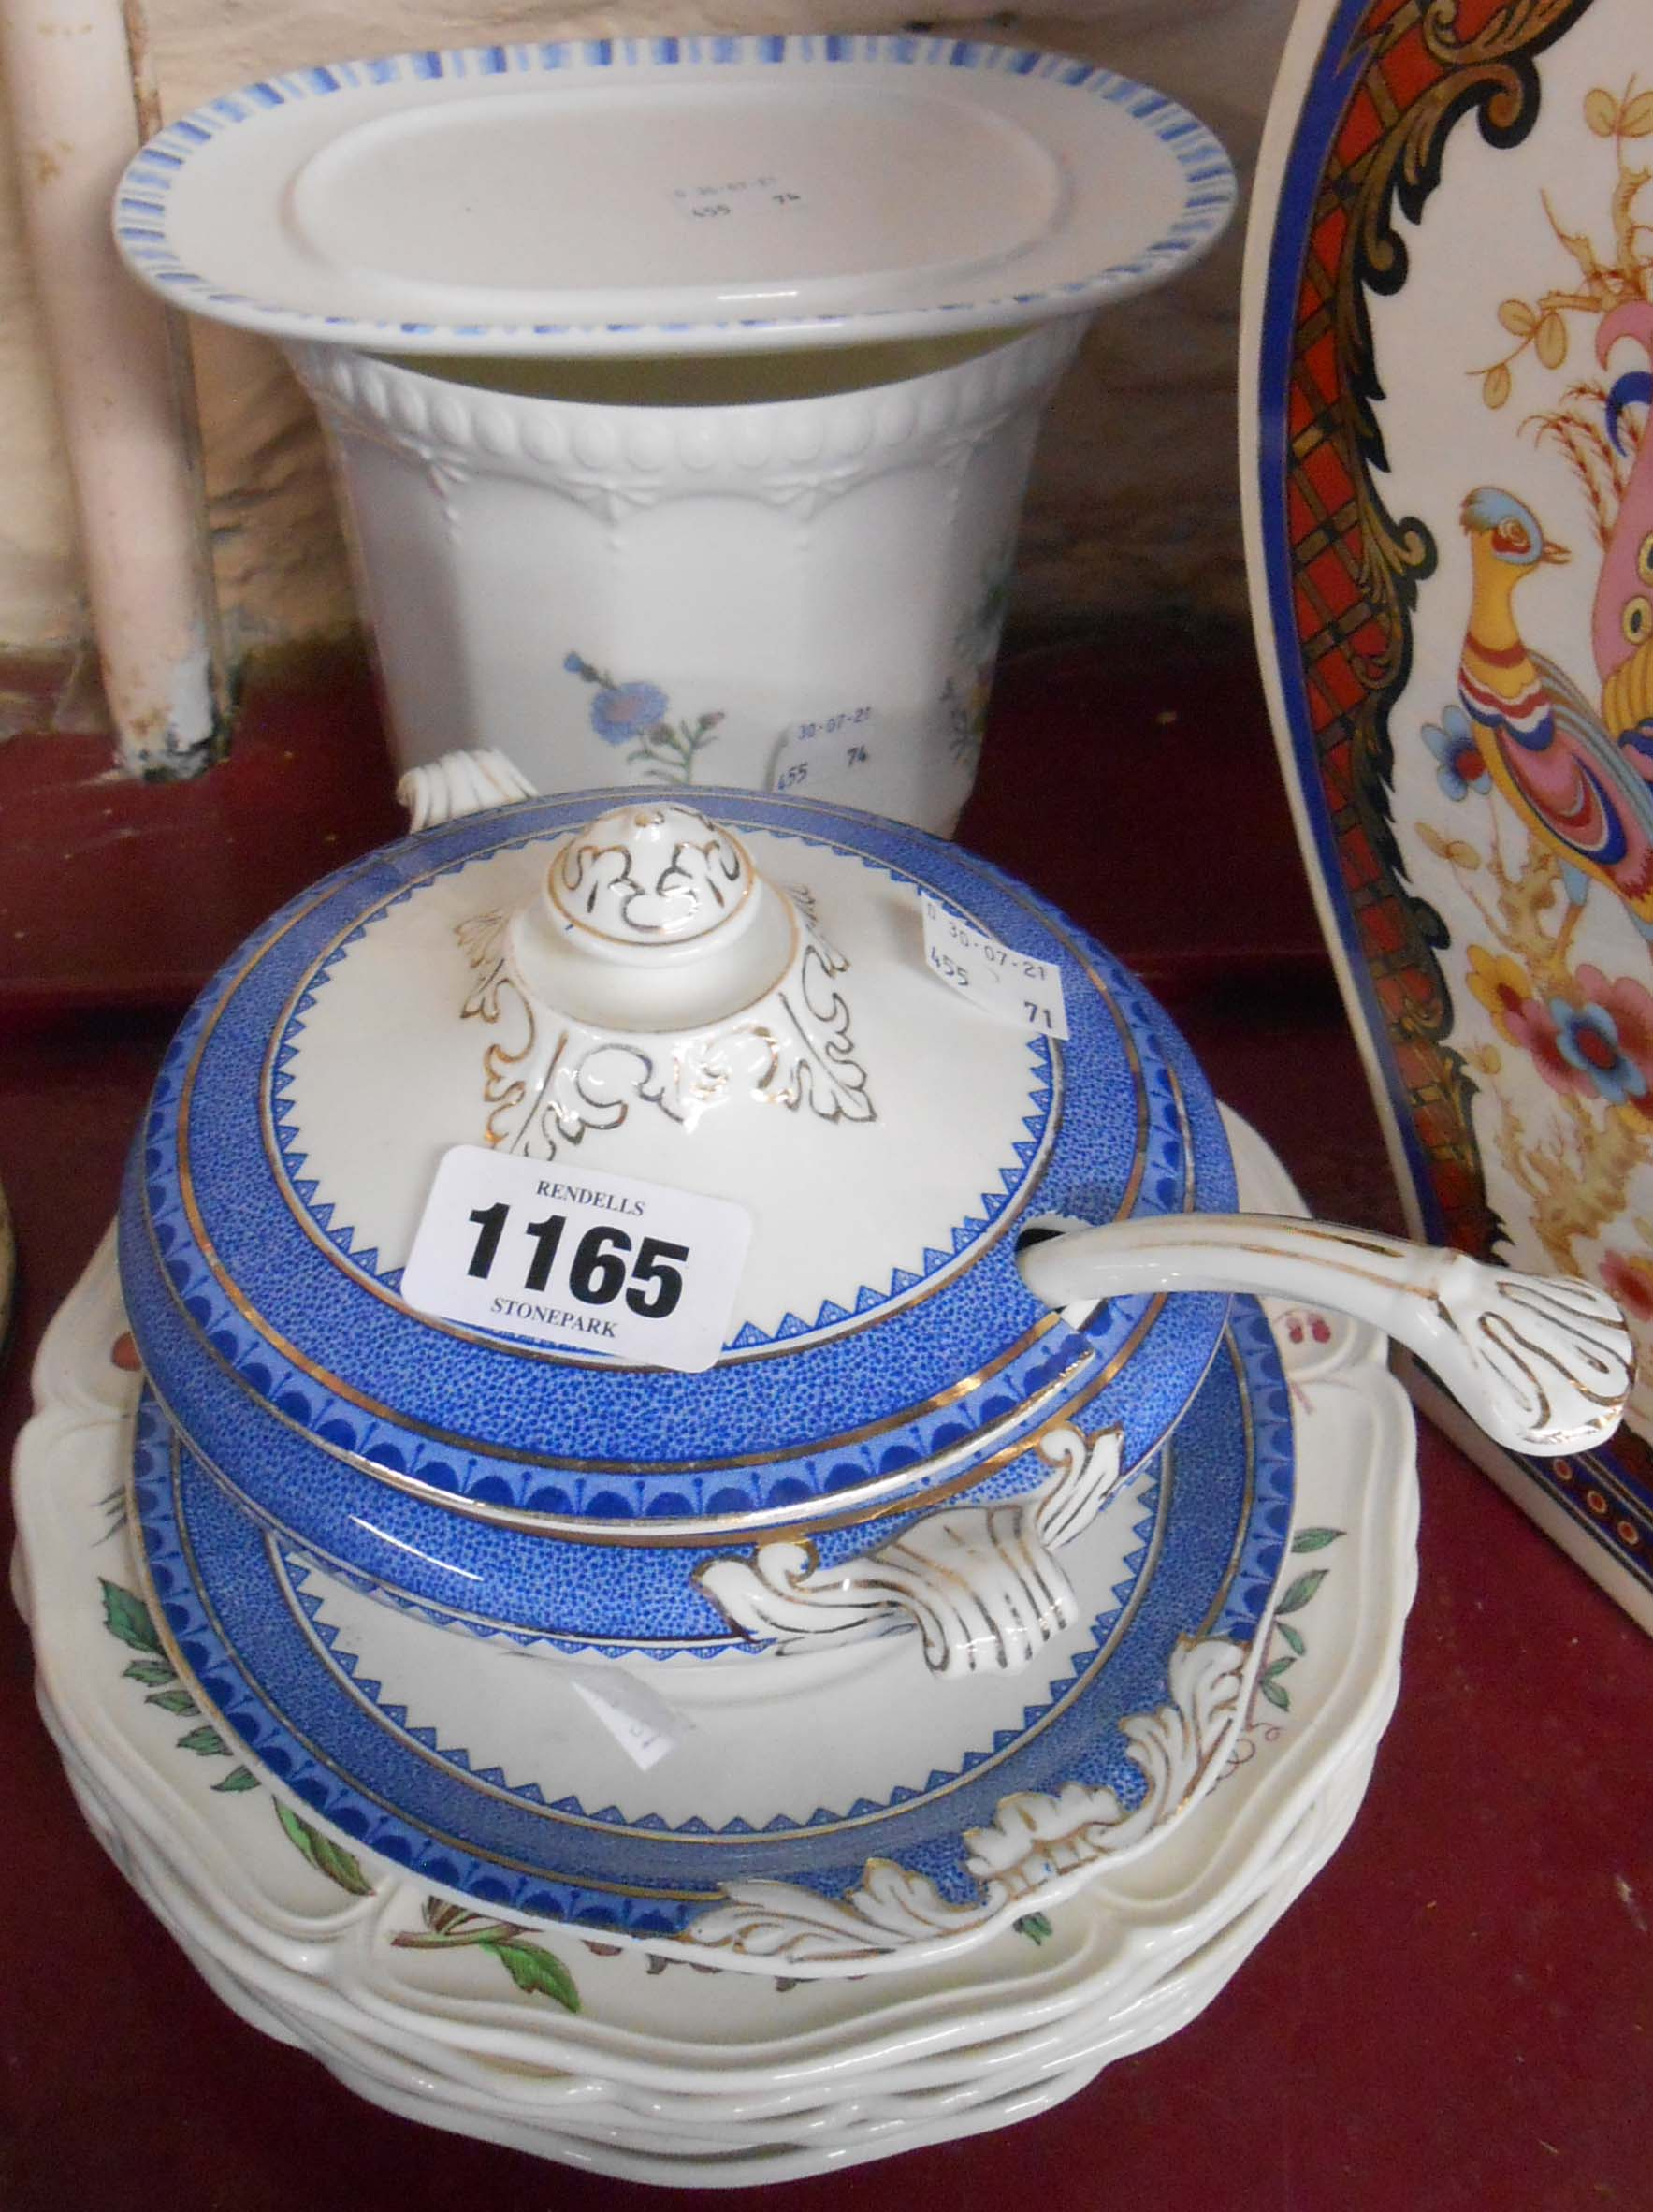 A selection of assorted ceramics including Staffordshire sauce tureen and ladle, Wedgwood plates,